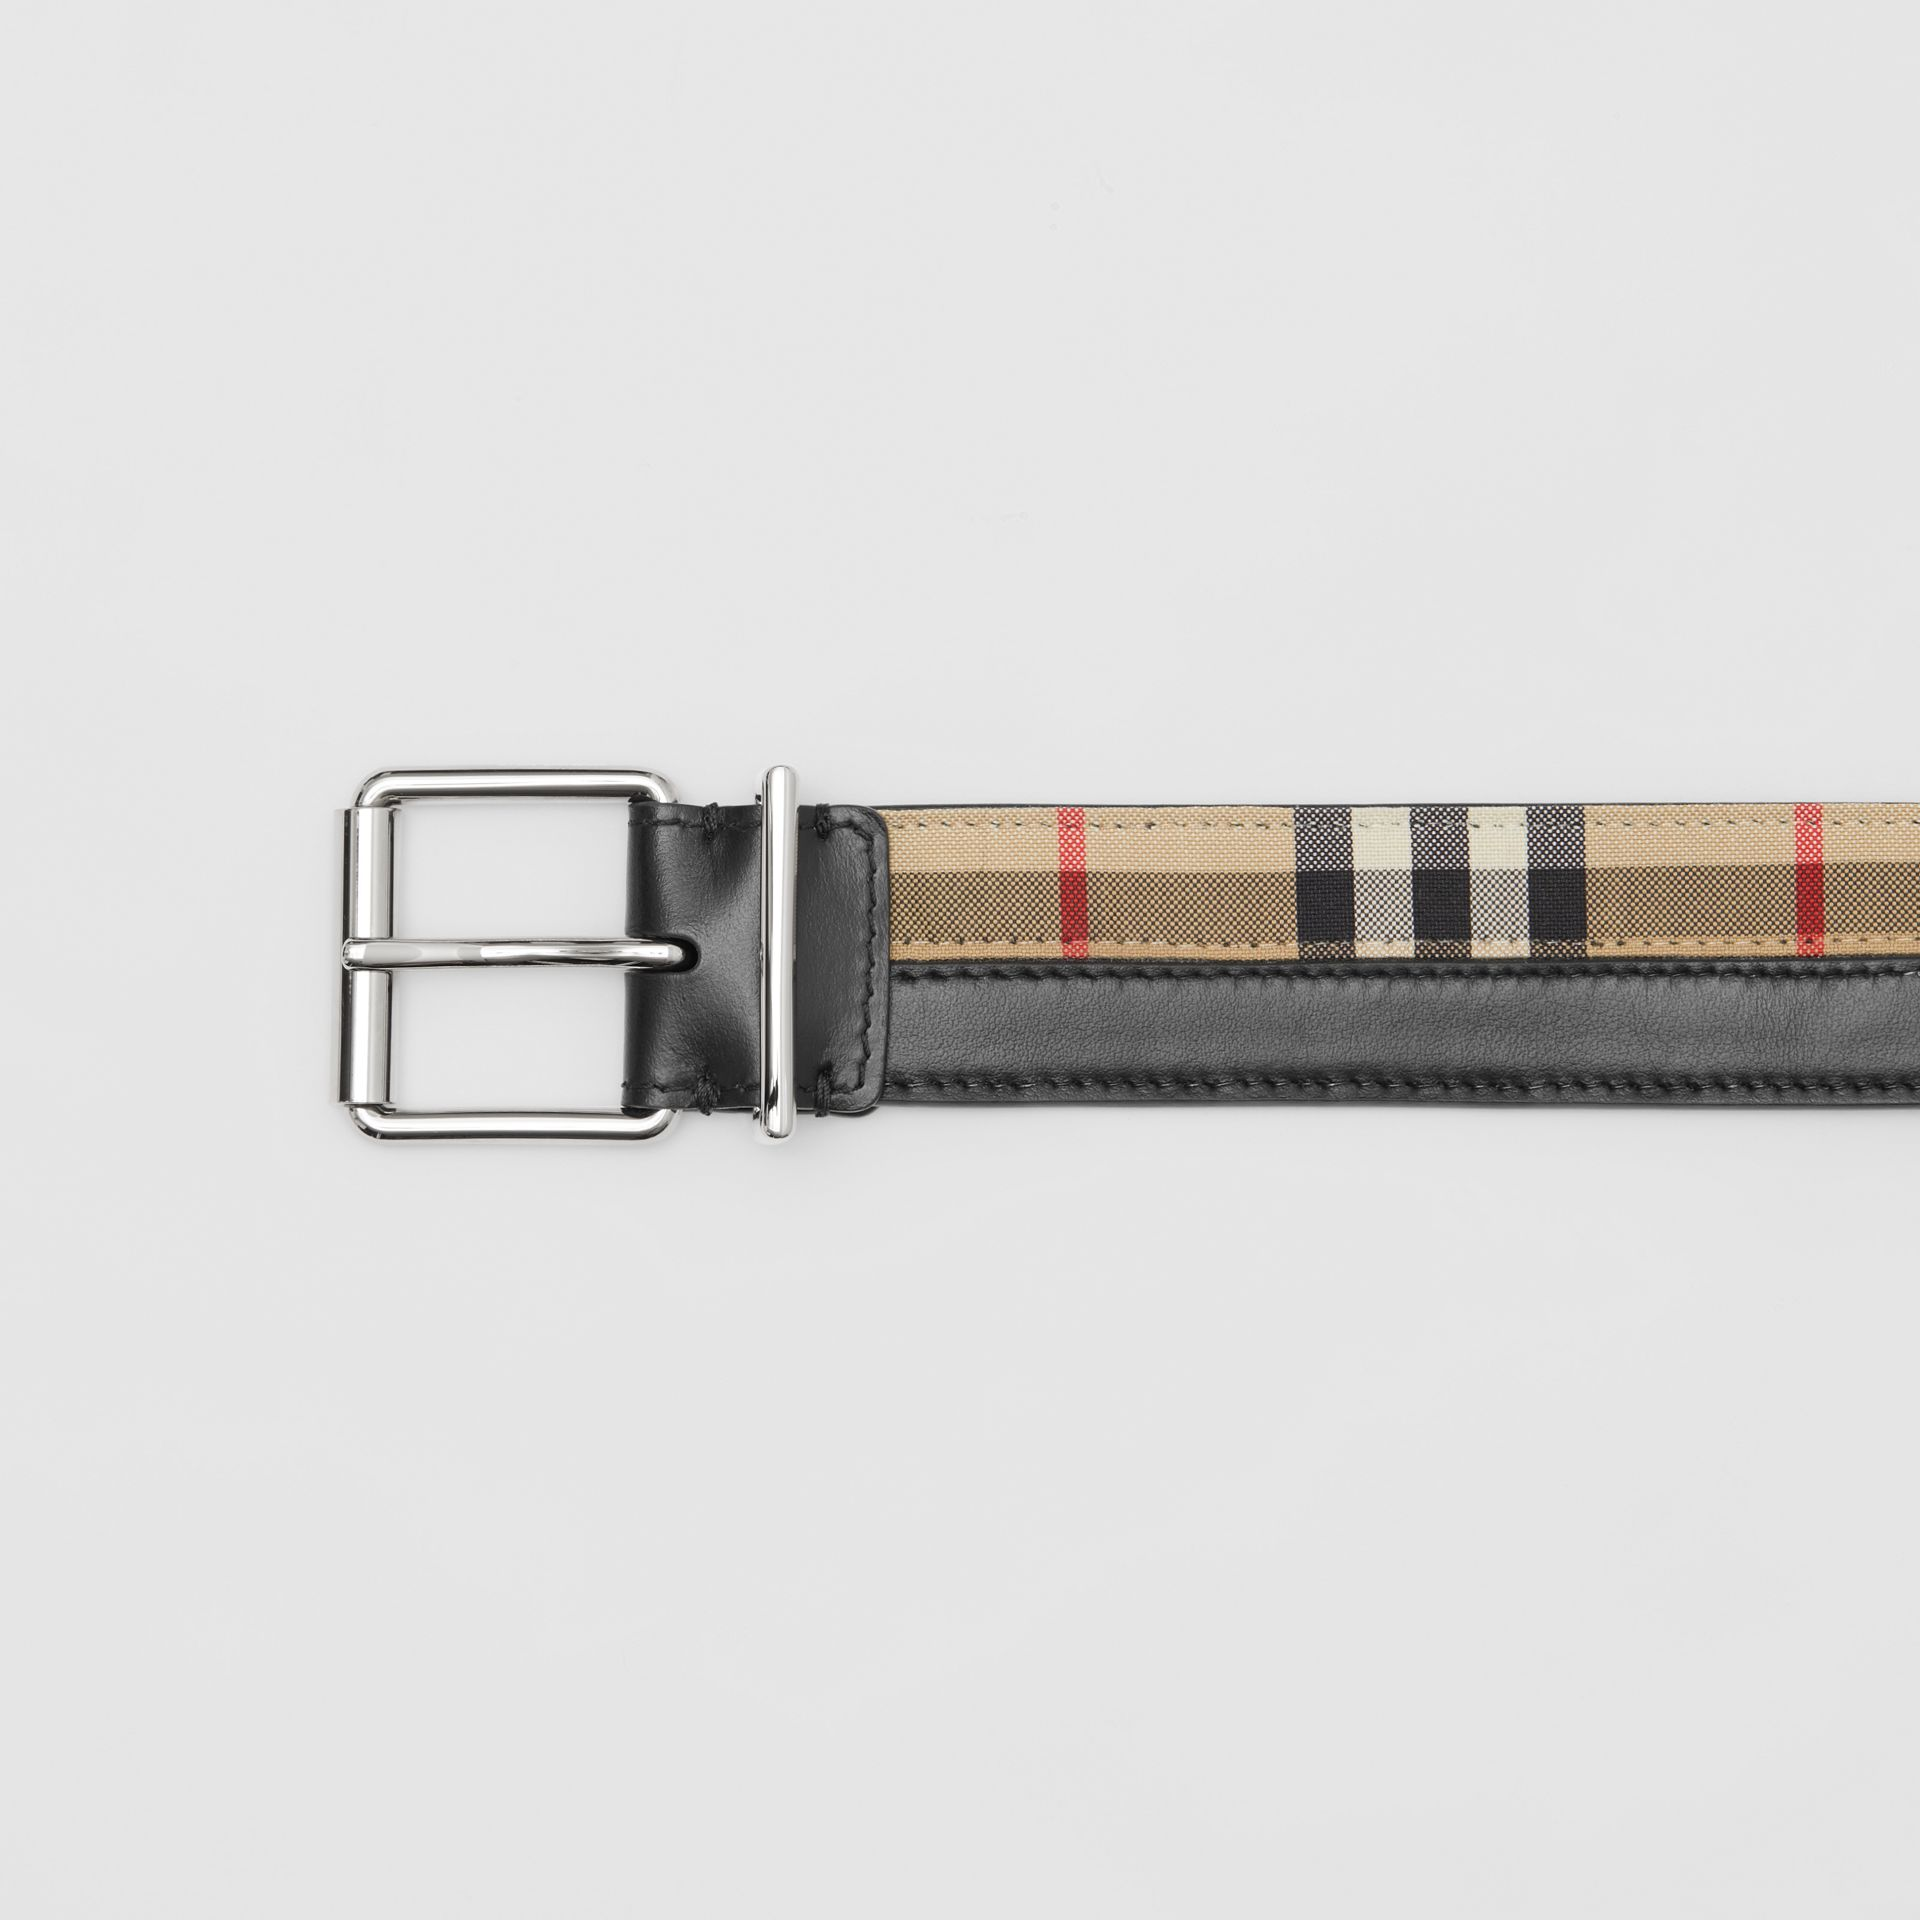 Logo Print Vintage Check and Leather Belt in Archive Beige/black - Men | Burberry Hong Kong S.A.R - gallery image 1